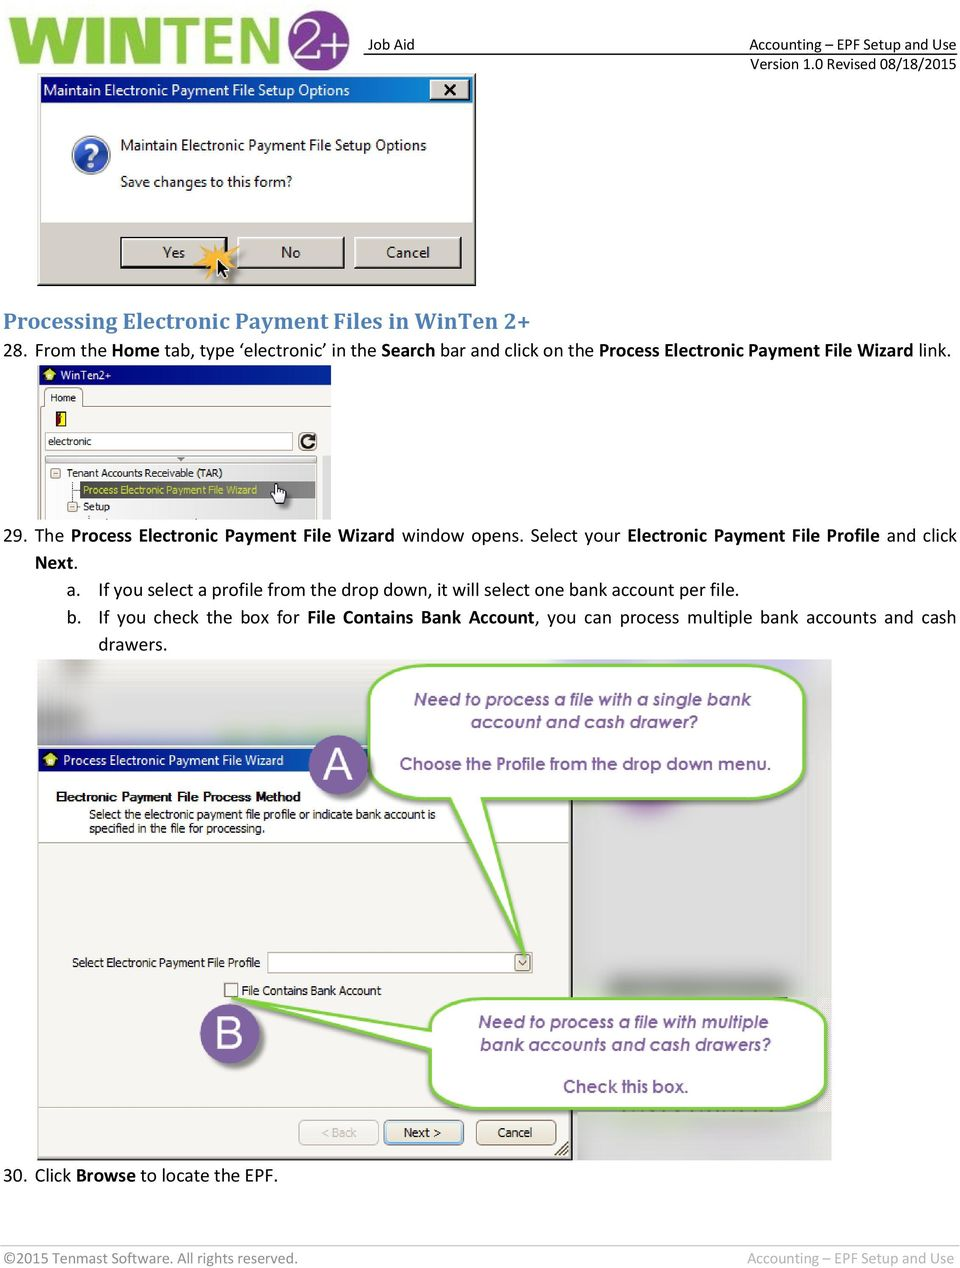 The Process Electronic Payment File Wizard window opens. Select your Electronic Payment File Profile an